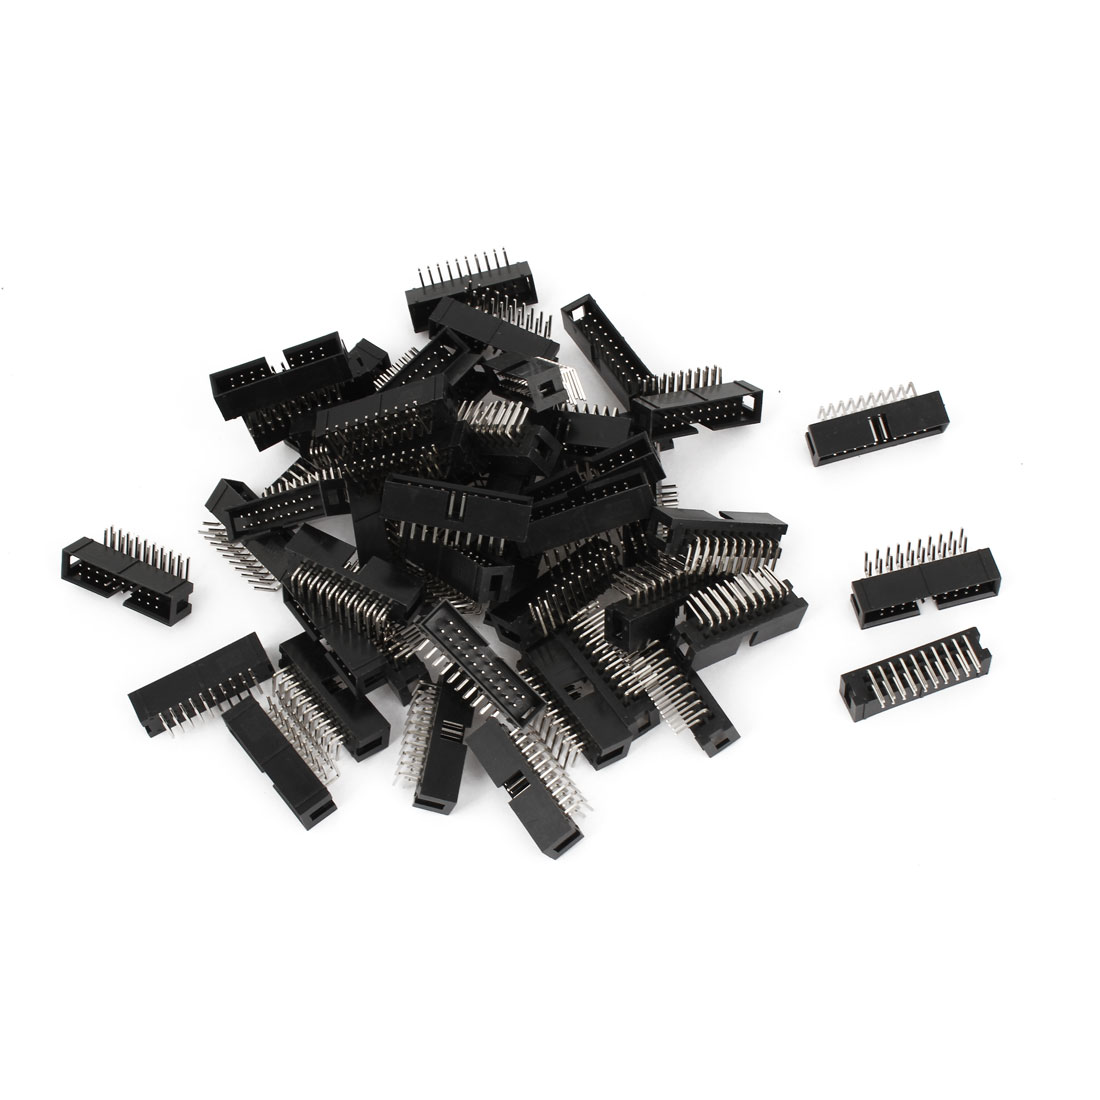 50 Pcs IDC Box Header DC3-20P 20 Way 2.54mm Right Angle Black